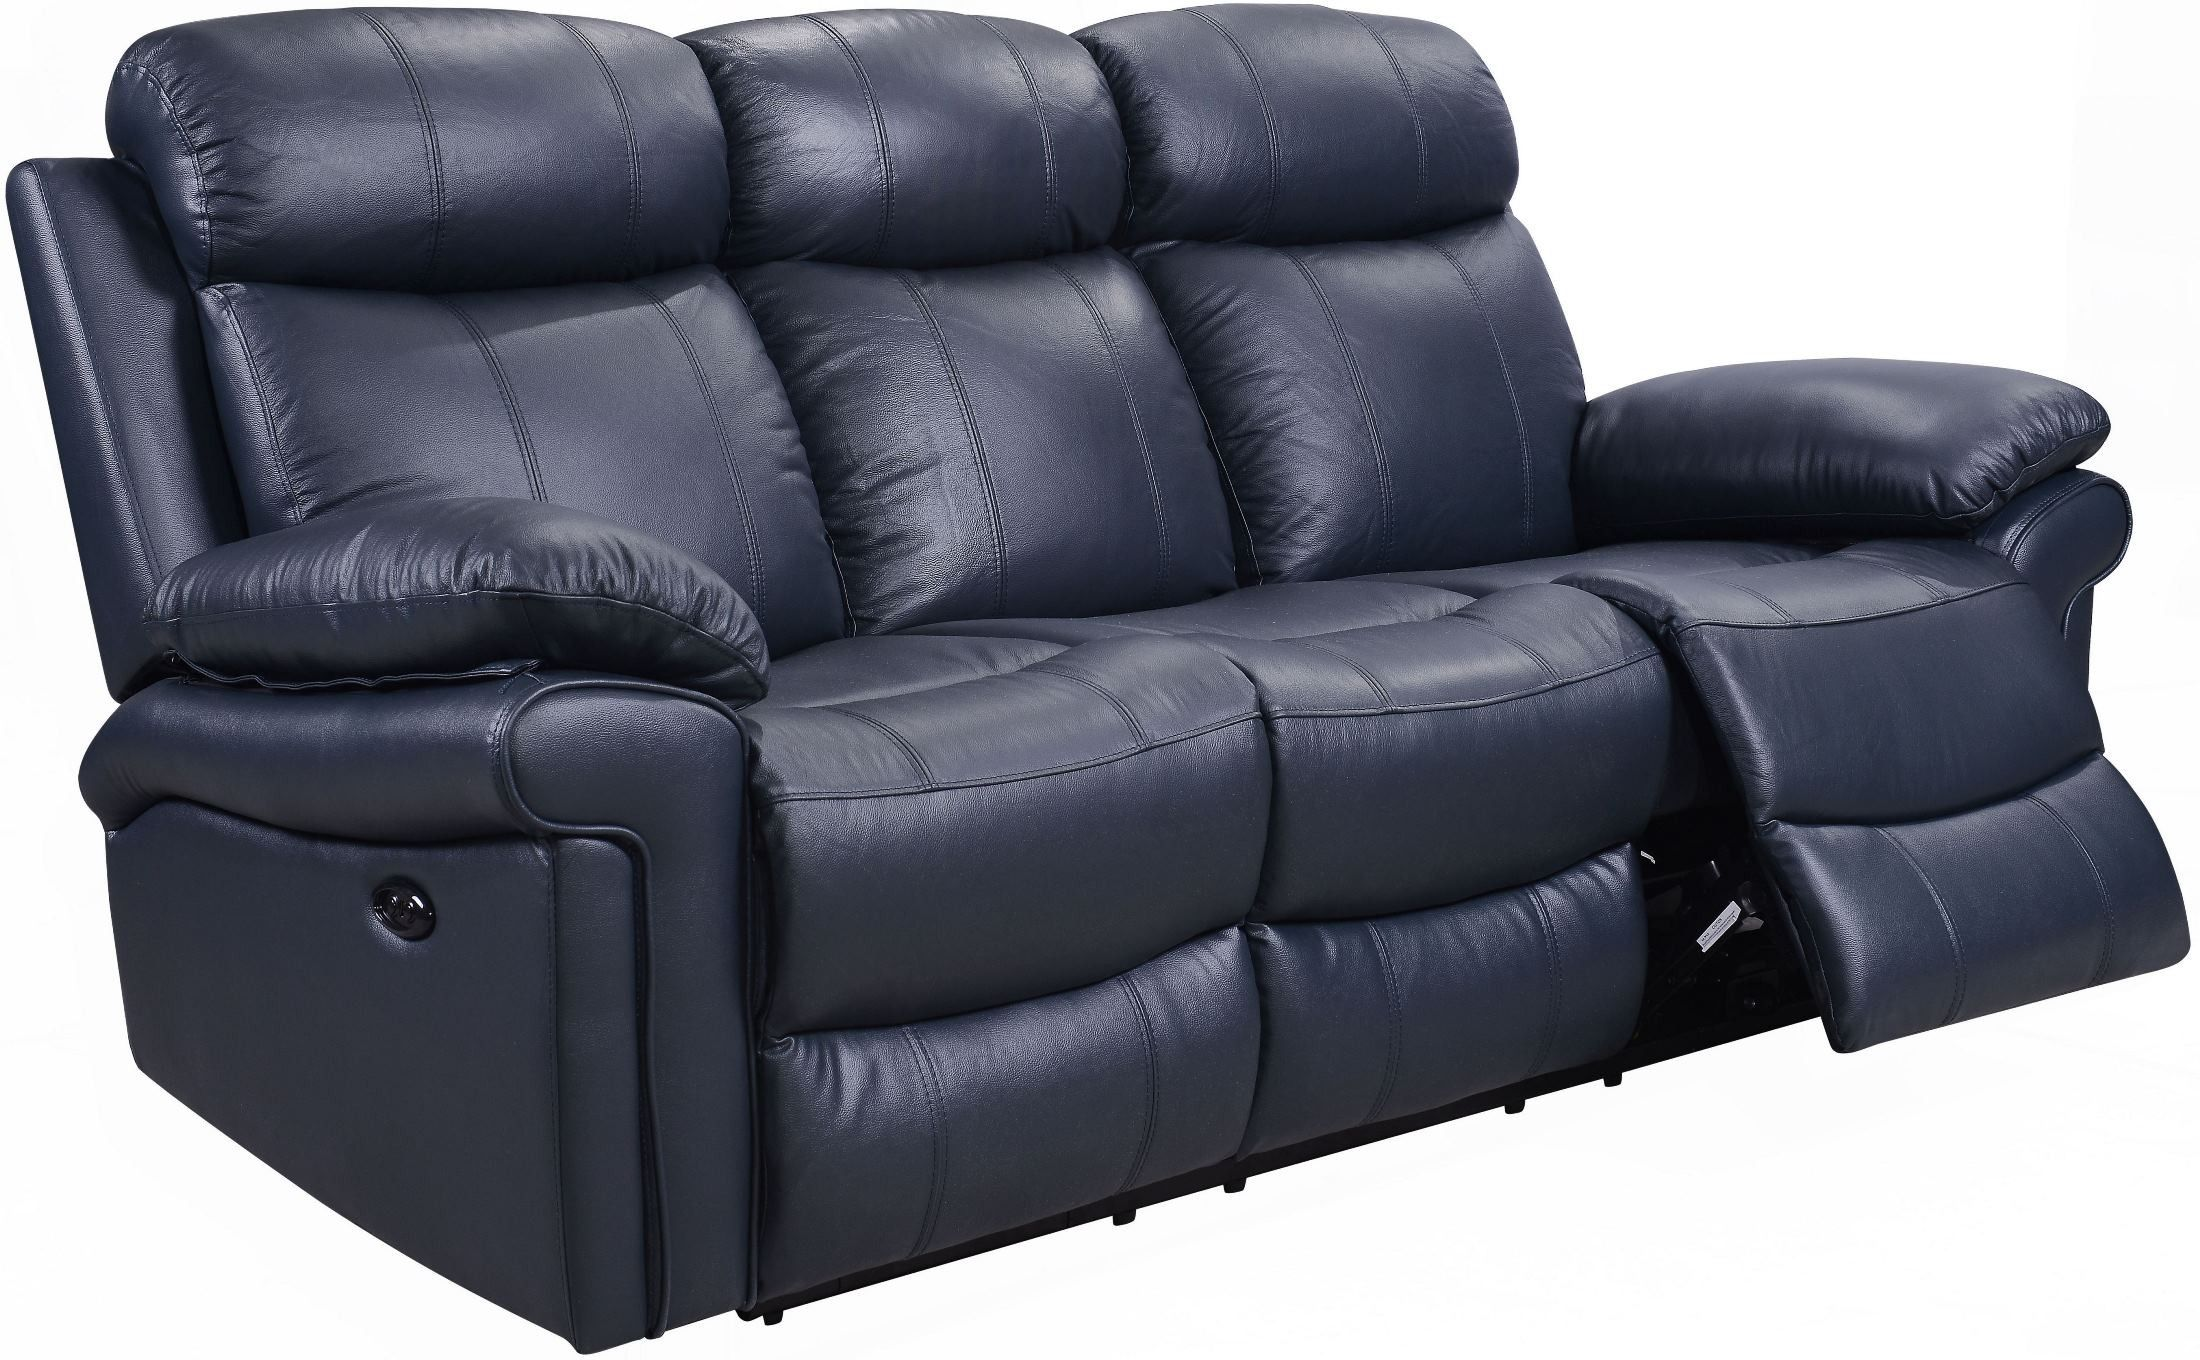 Shae Joplin Blue Leather Power Reclining Sofa Blue Leather Couch